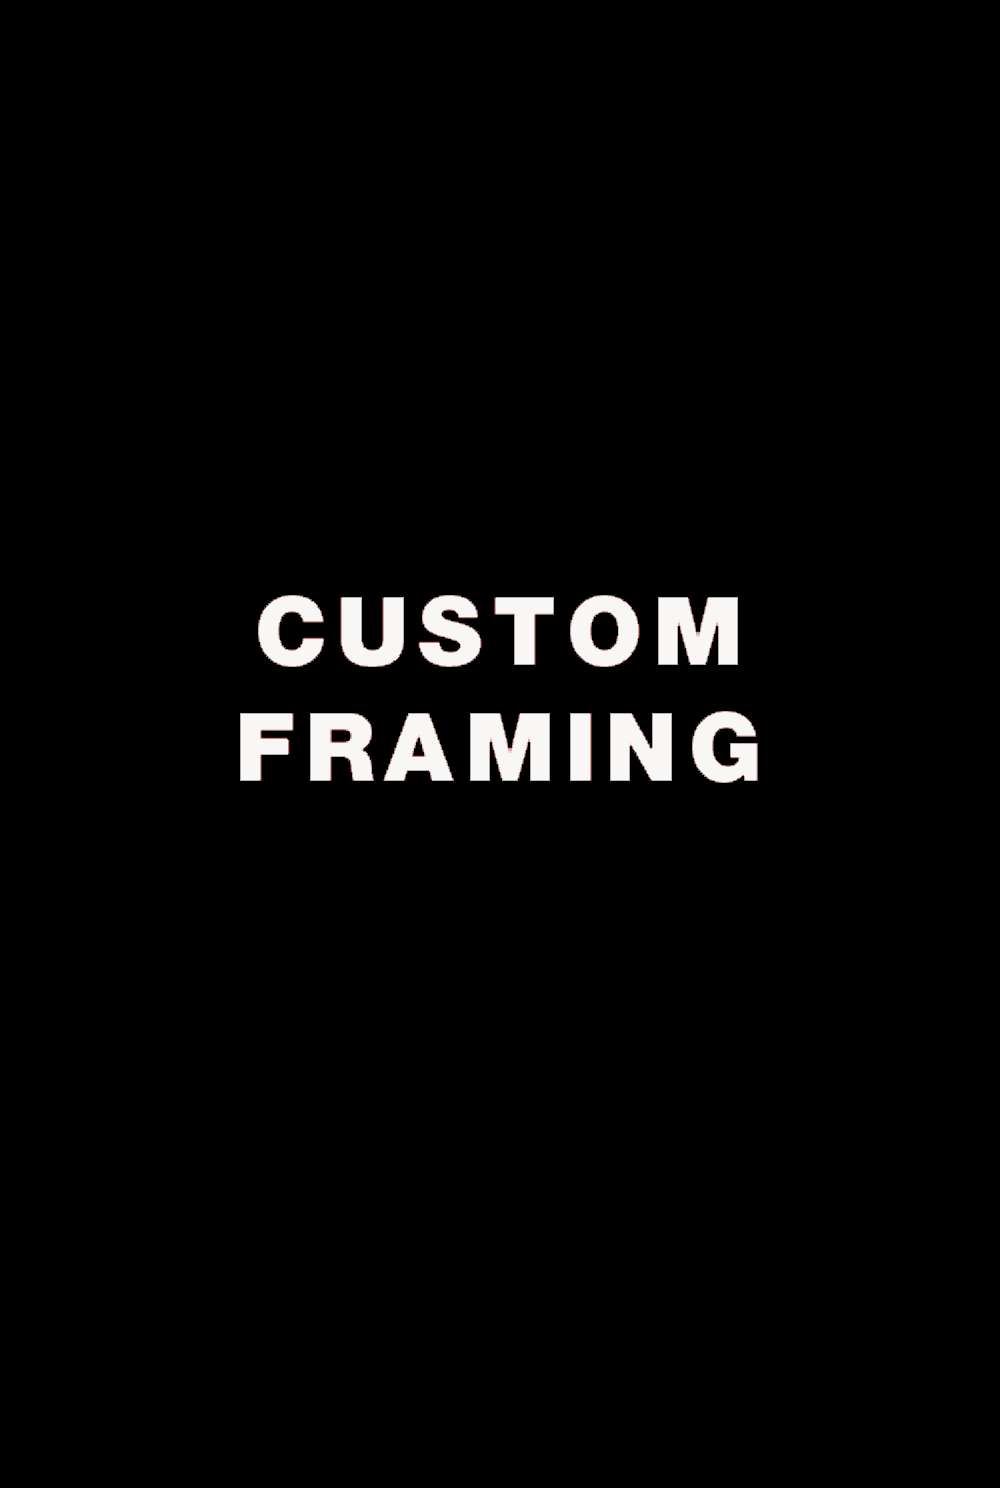 CUSTOM FRAMING BLACK.png